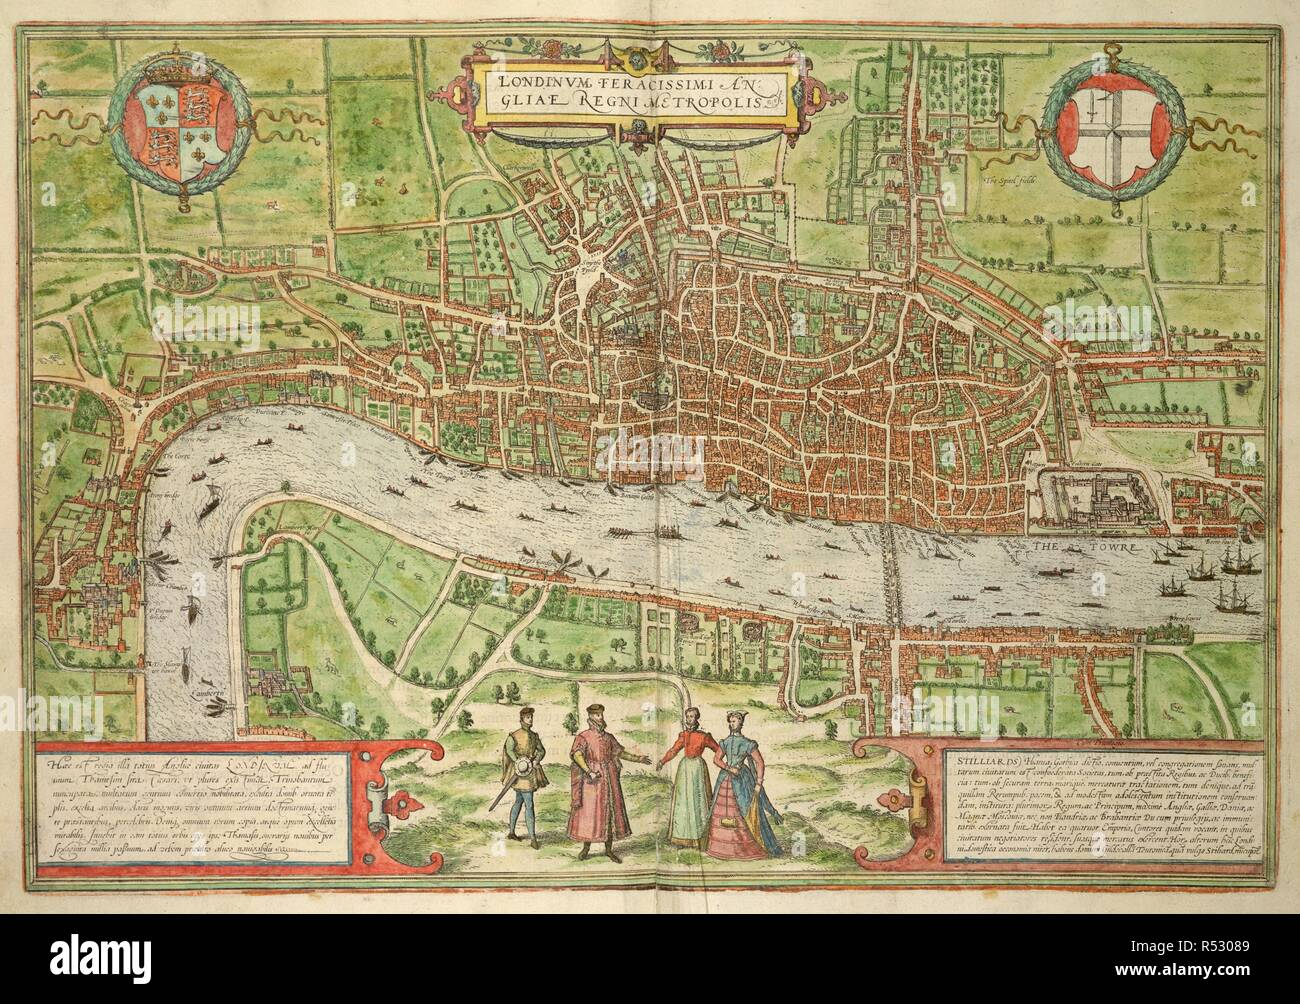 London 1600 Map.London Map 1600 Stock Photos London Map 1600 Stock Images Alamy